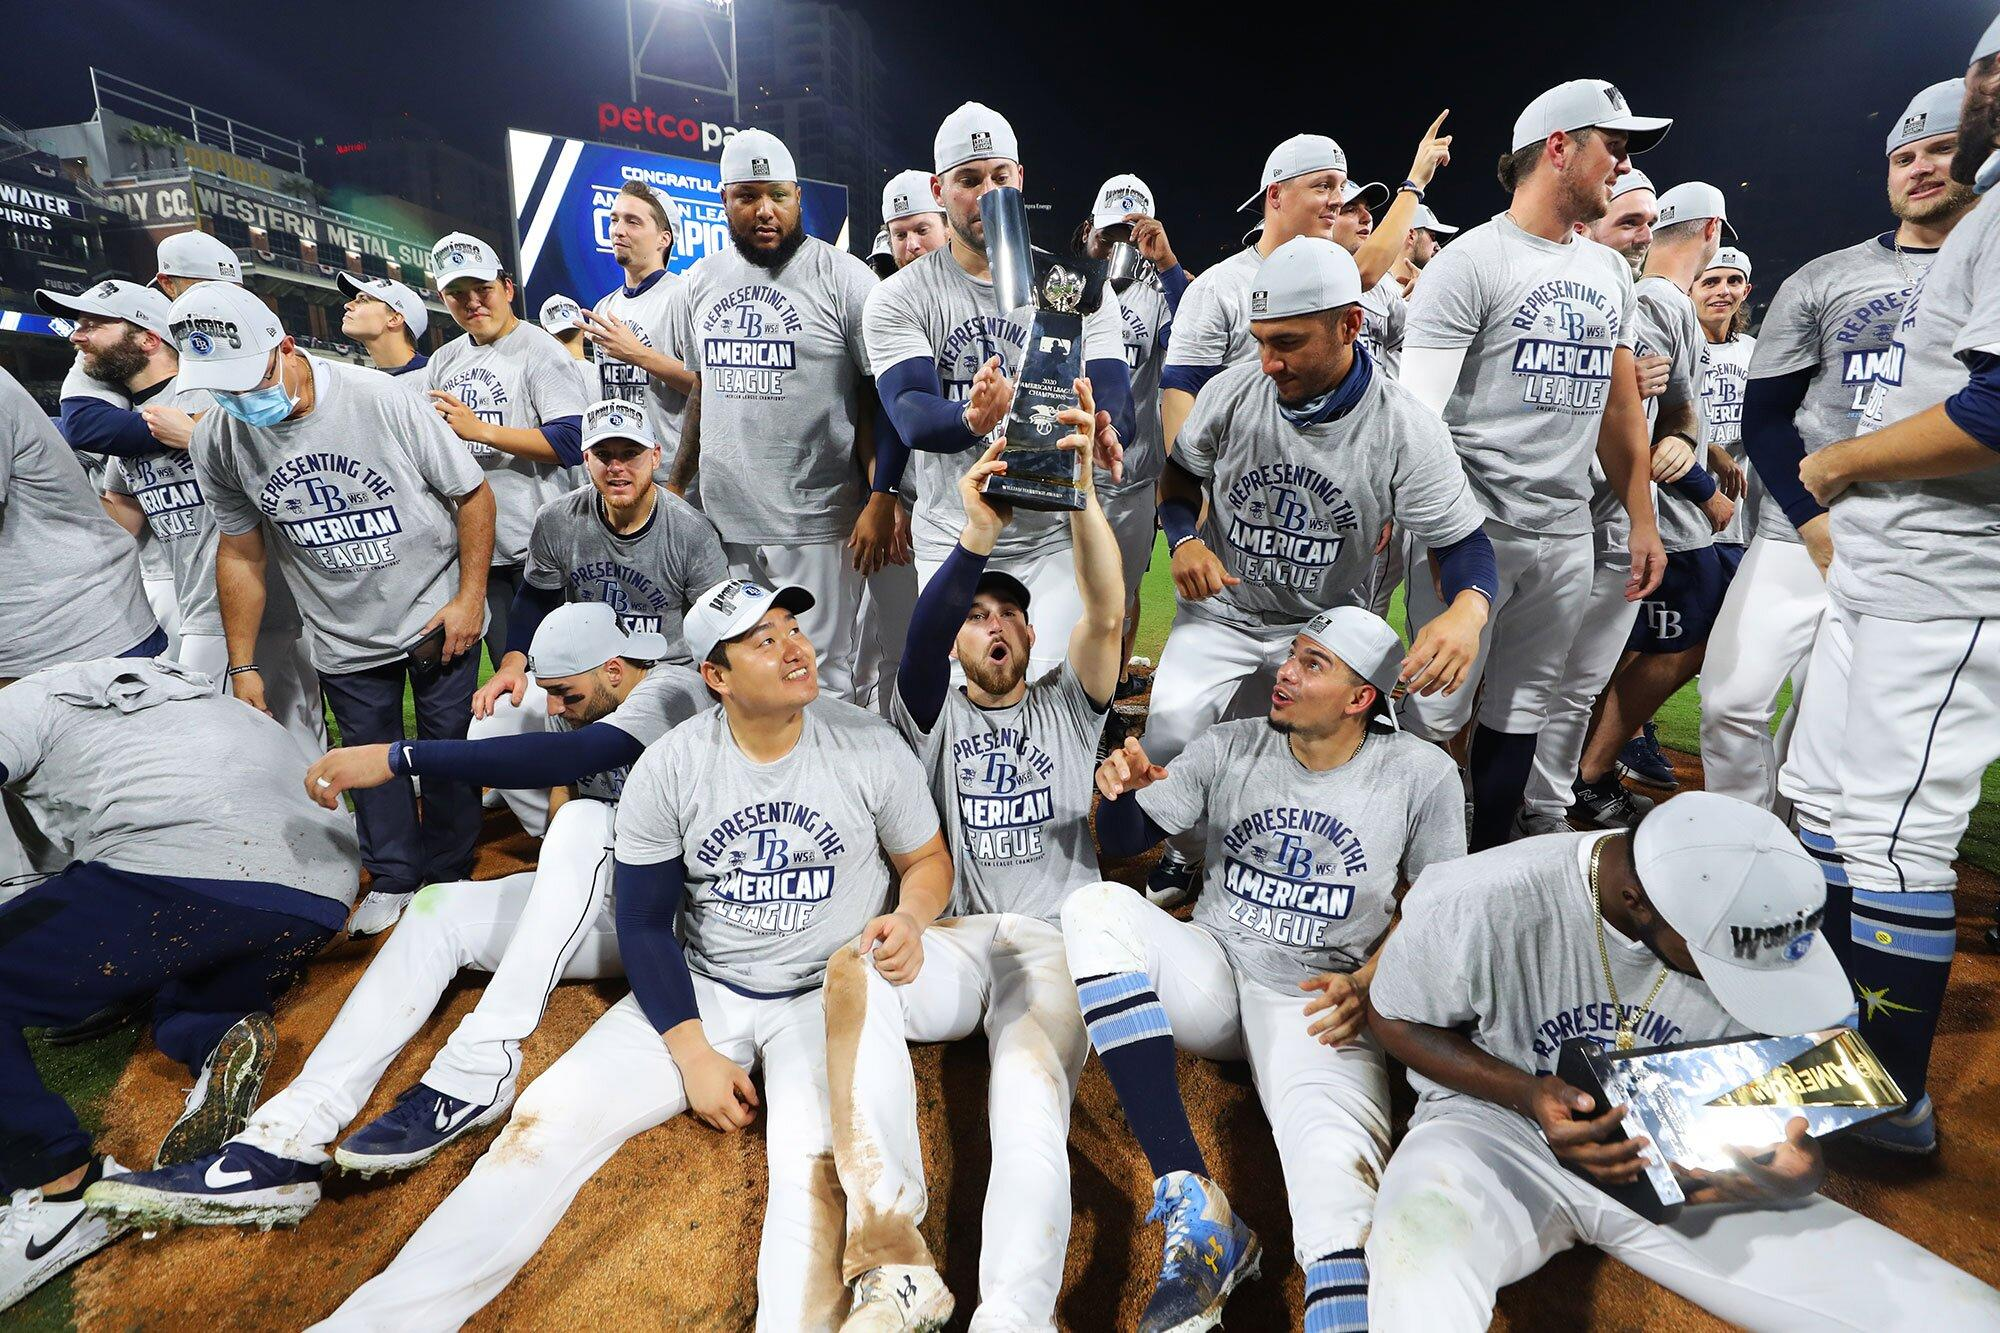 tampa bay rays are going to the world series for the first time since 2008 https nz news yahoo com tampa bay rays going world 201516976 html